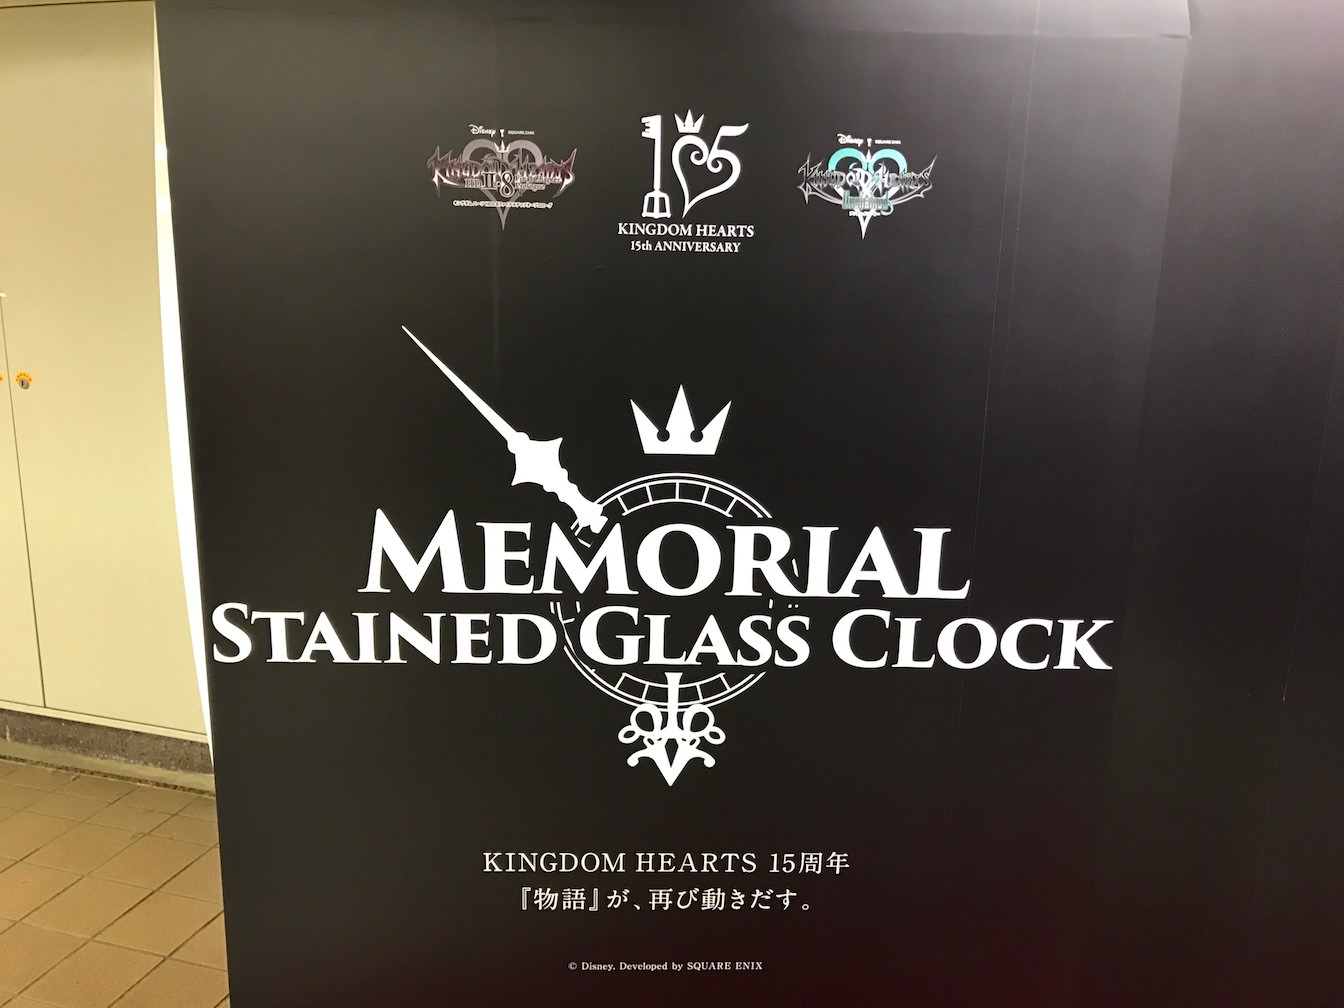 Kingdomhearts 15th anniversary exhibition at shinjuku 2